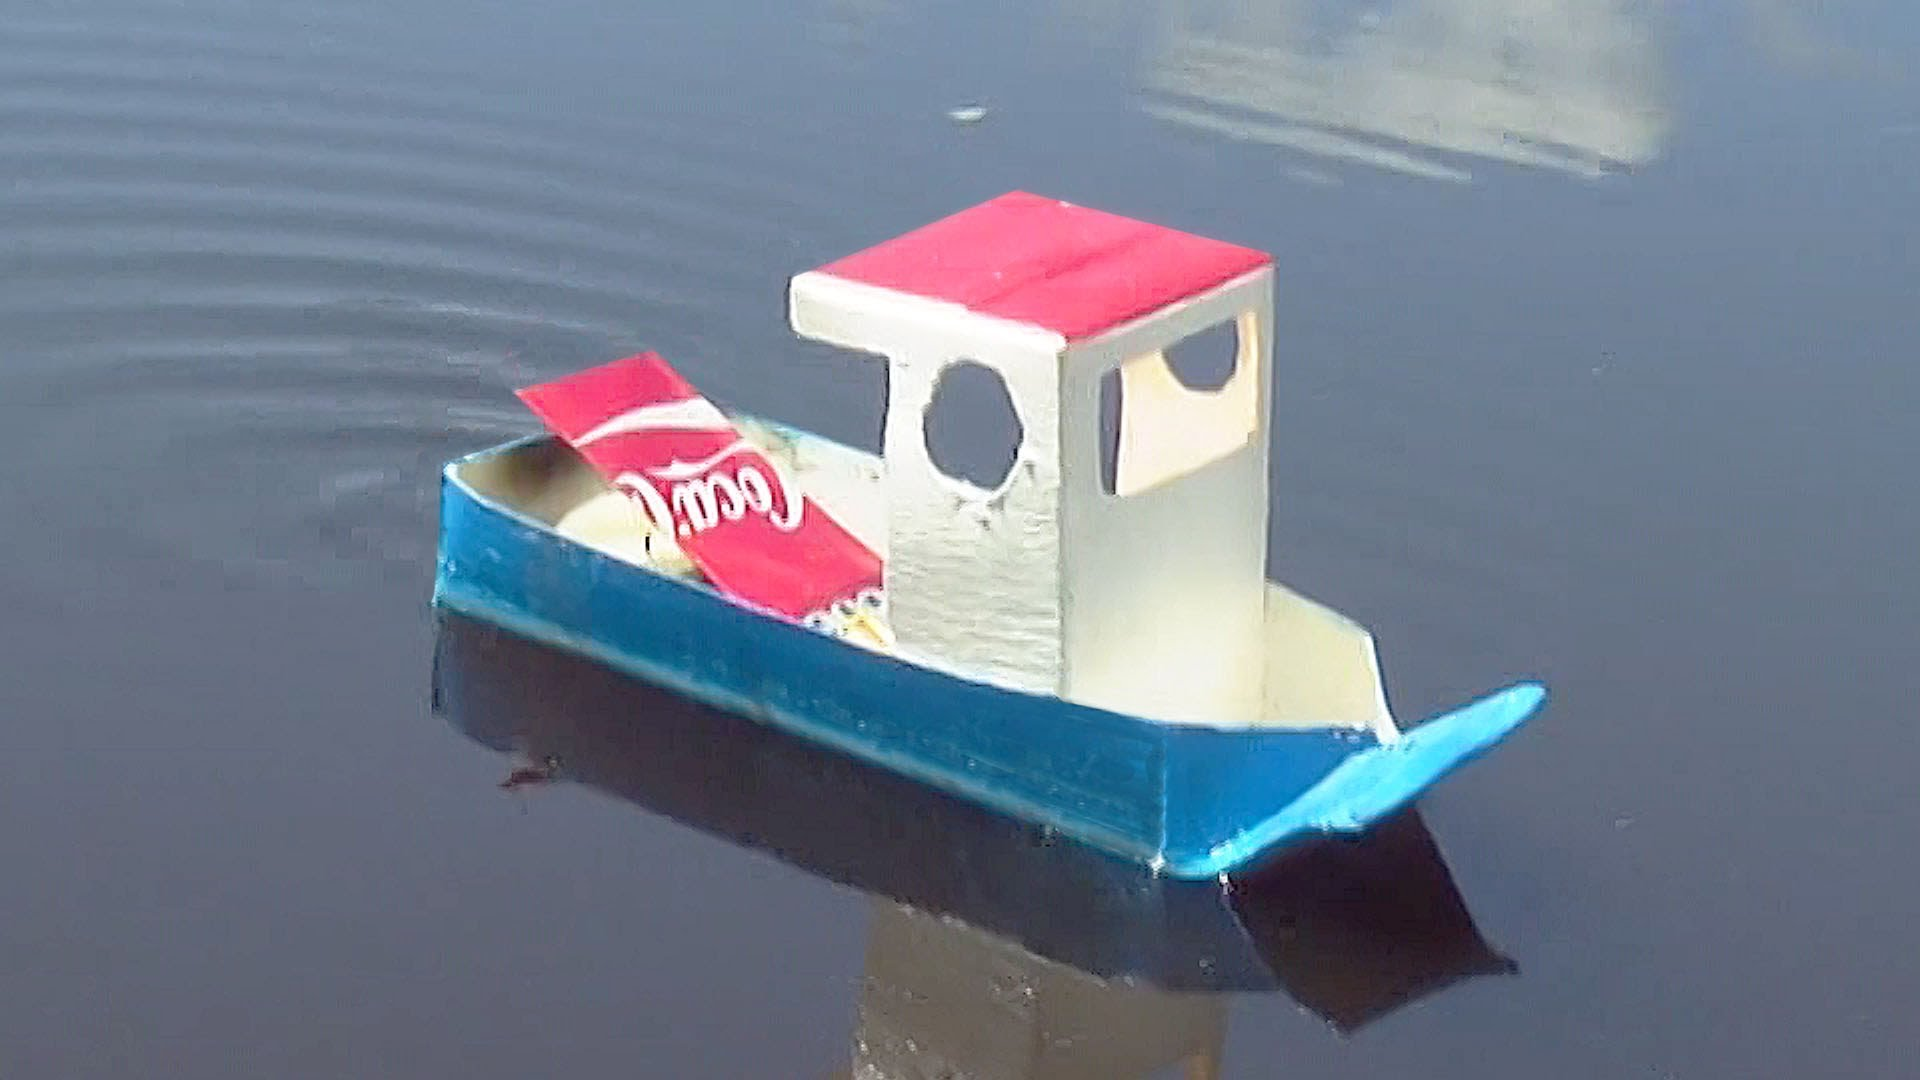 How to Make a Simple Pop Pop Boat - YouTube